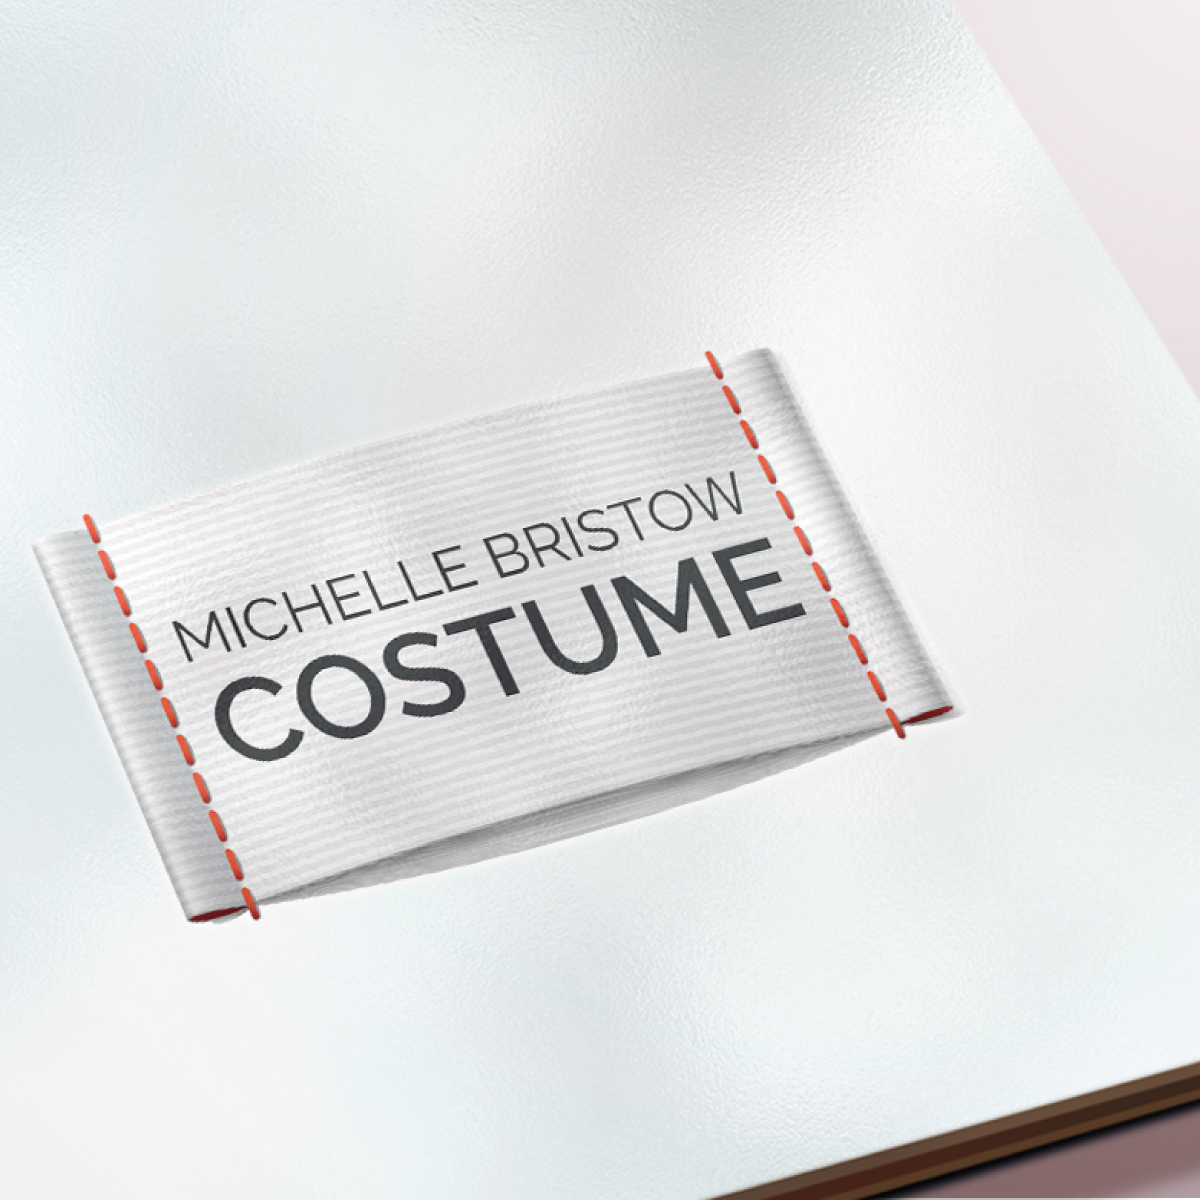 logo design for the costume design michelle bristow